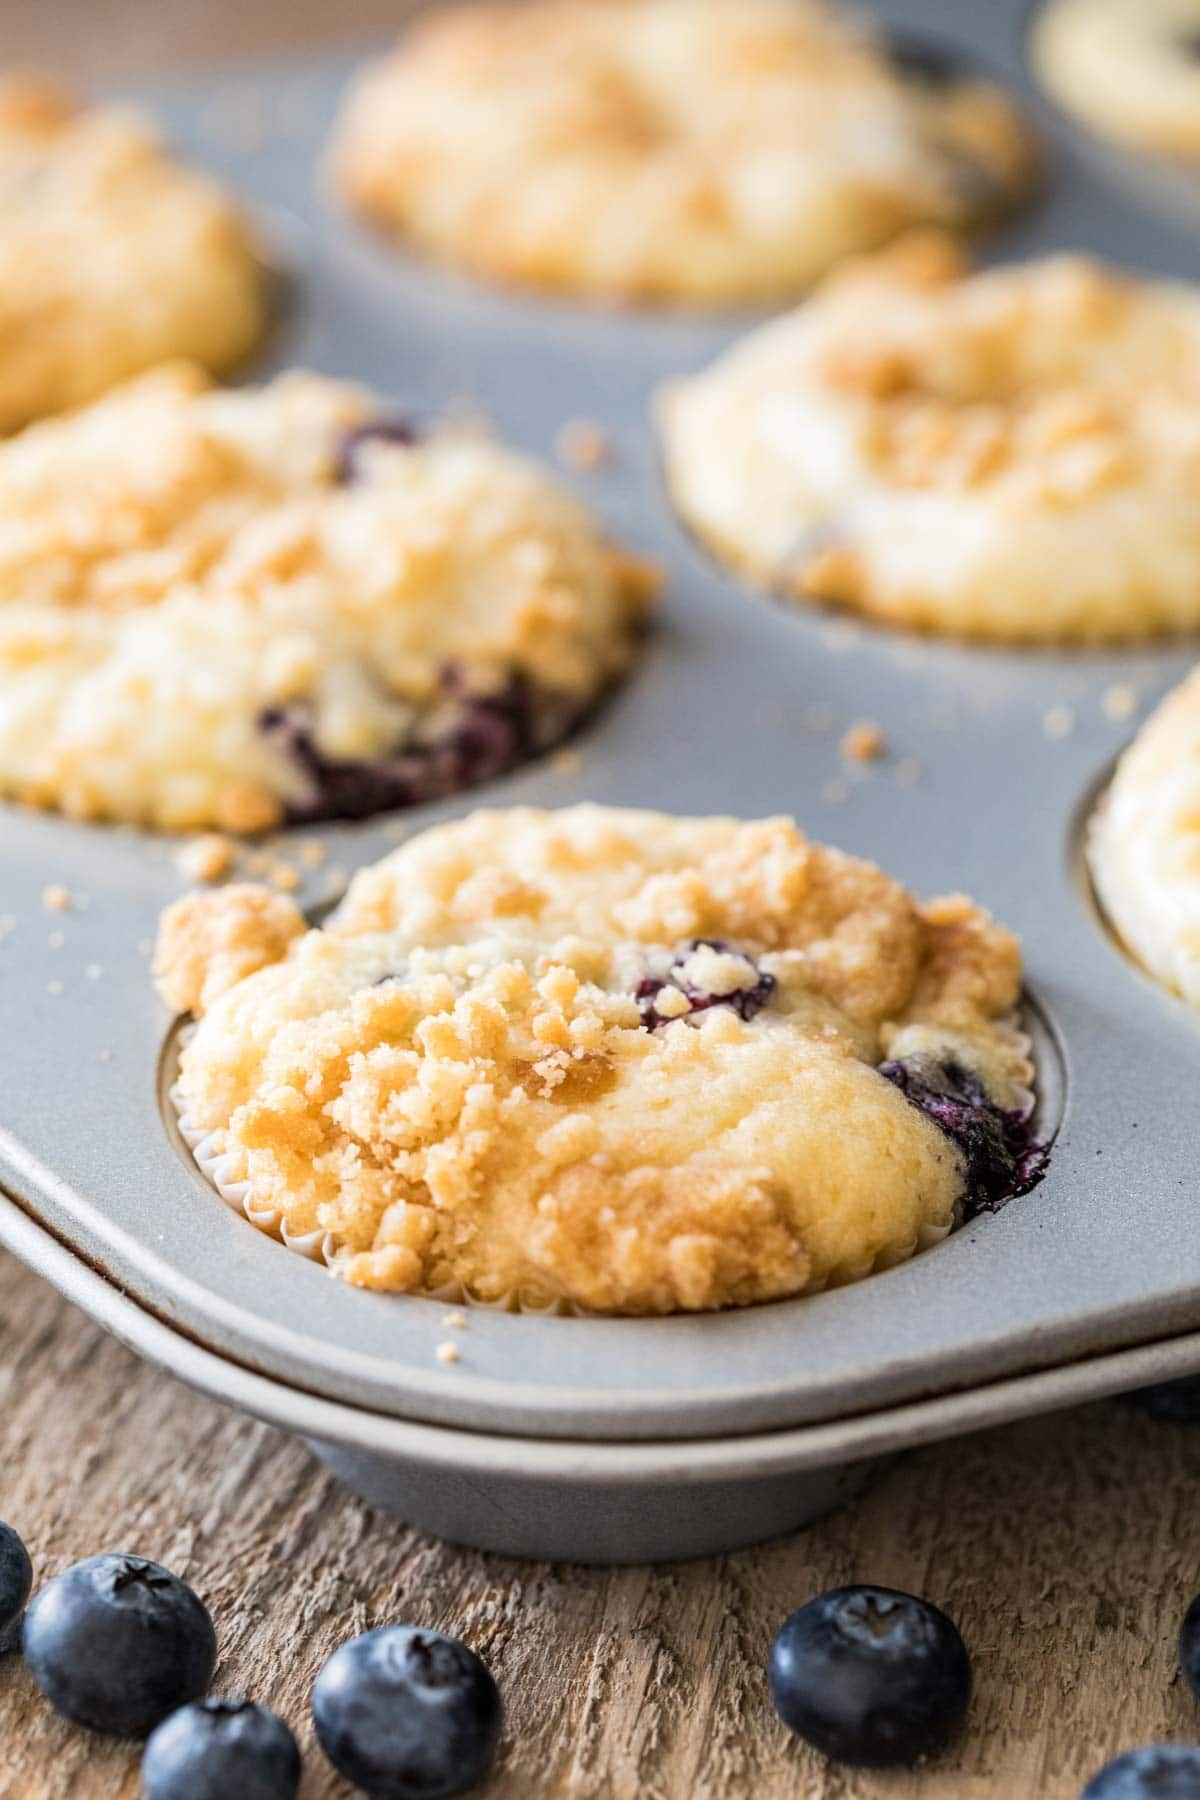 Baked blueberry cream cheese muffins in a muffin tin.